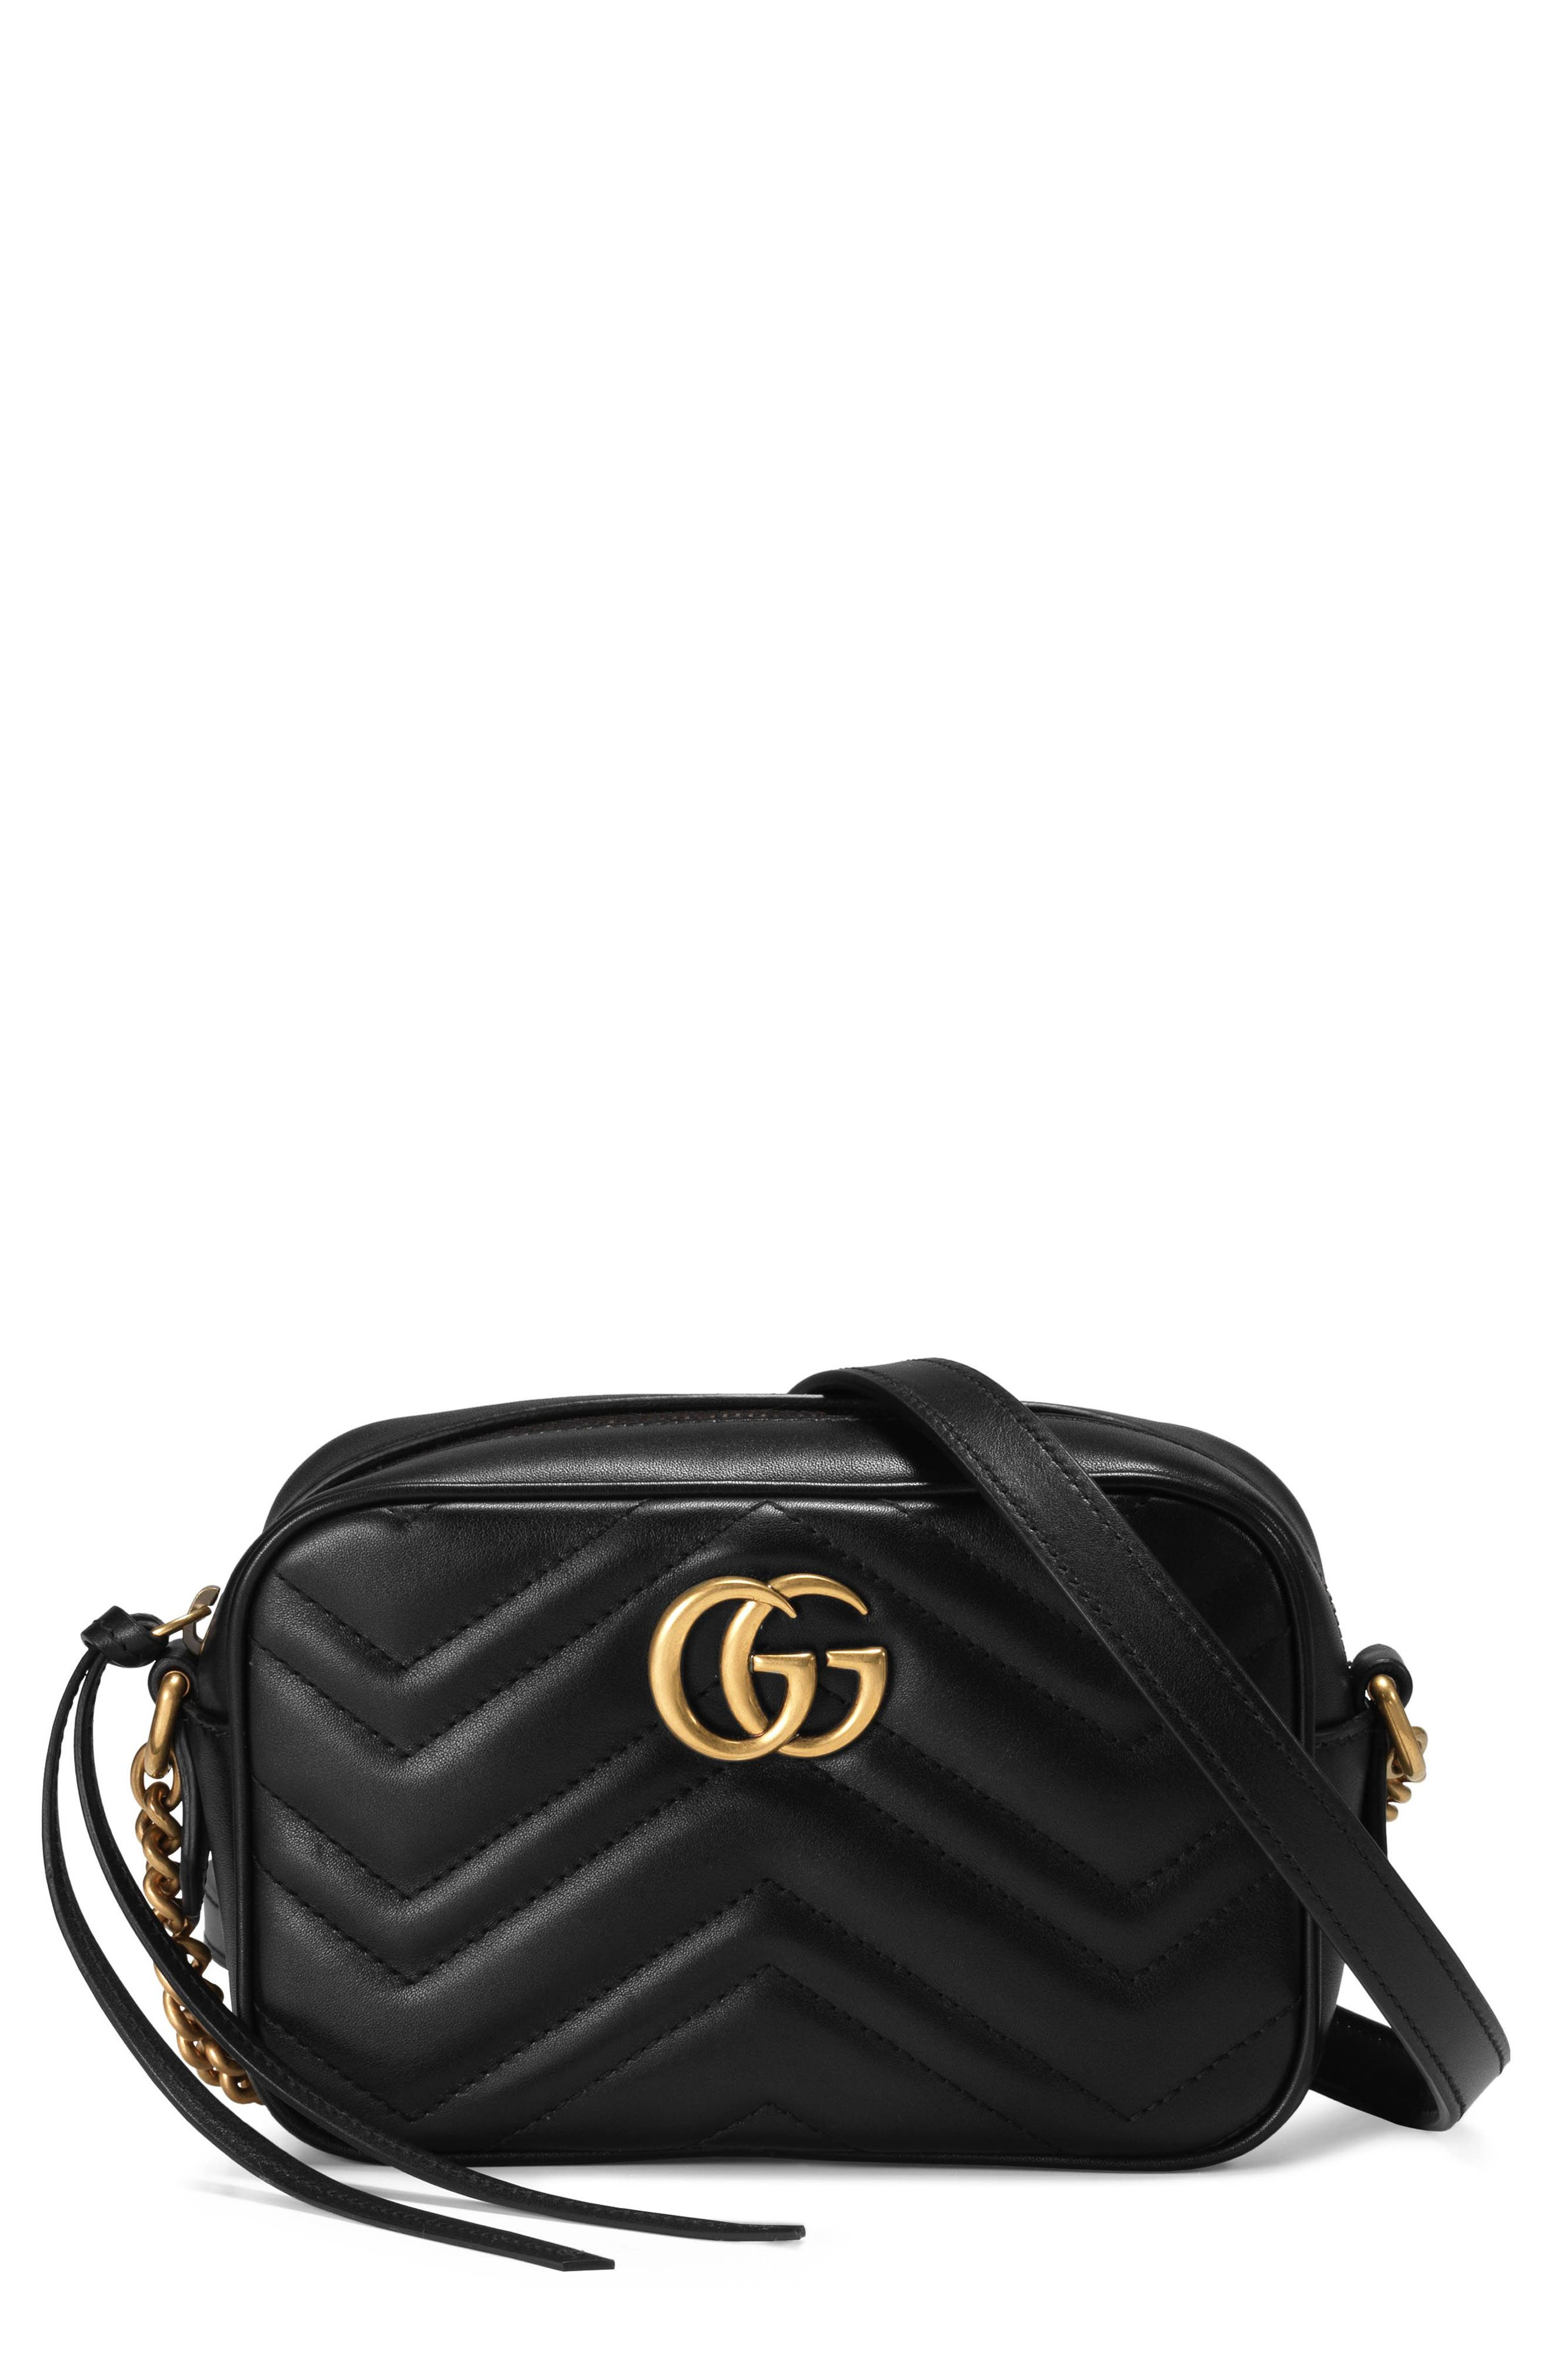 GG Marmont 2.0 Matelassé Leather Shoulder Bag,                         Main,                         color, NERO